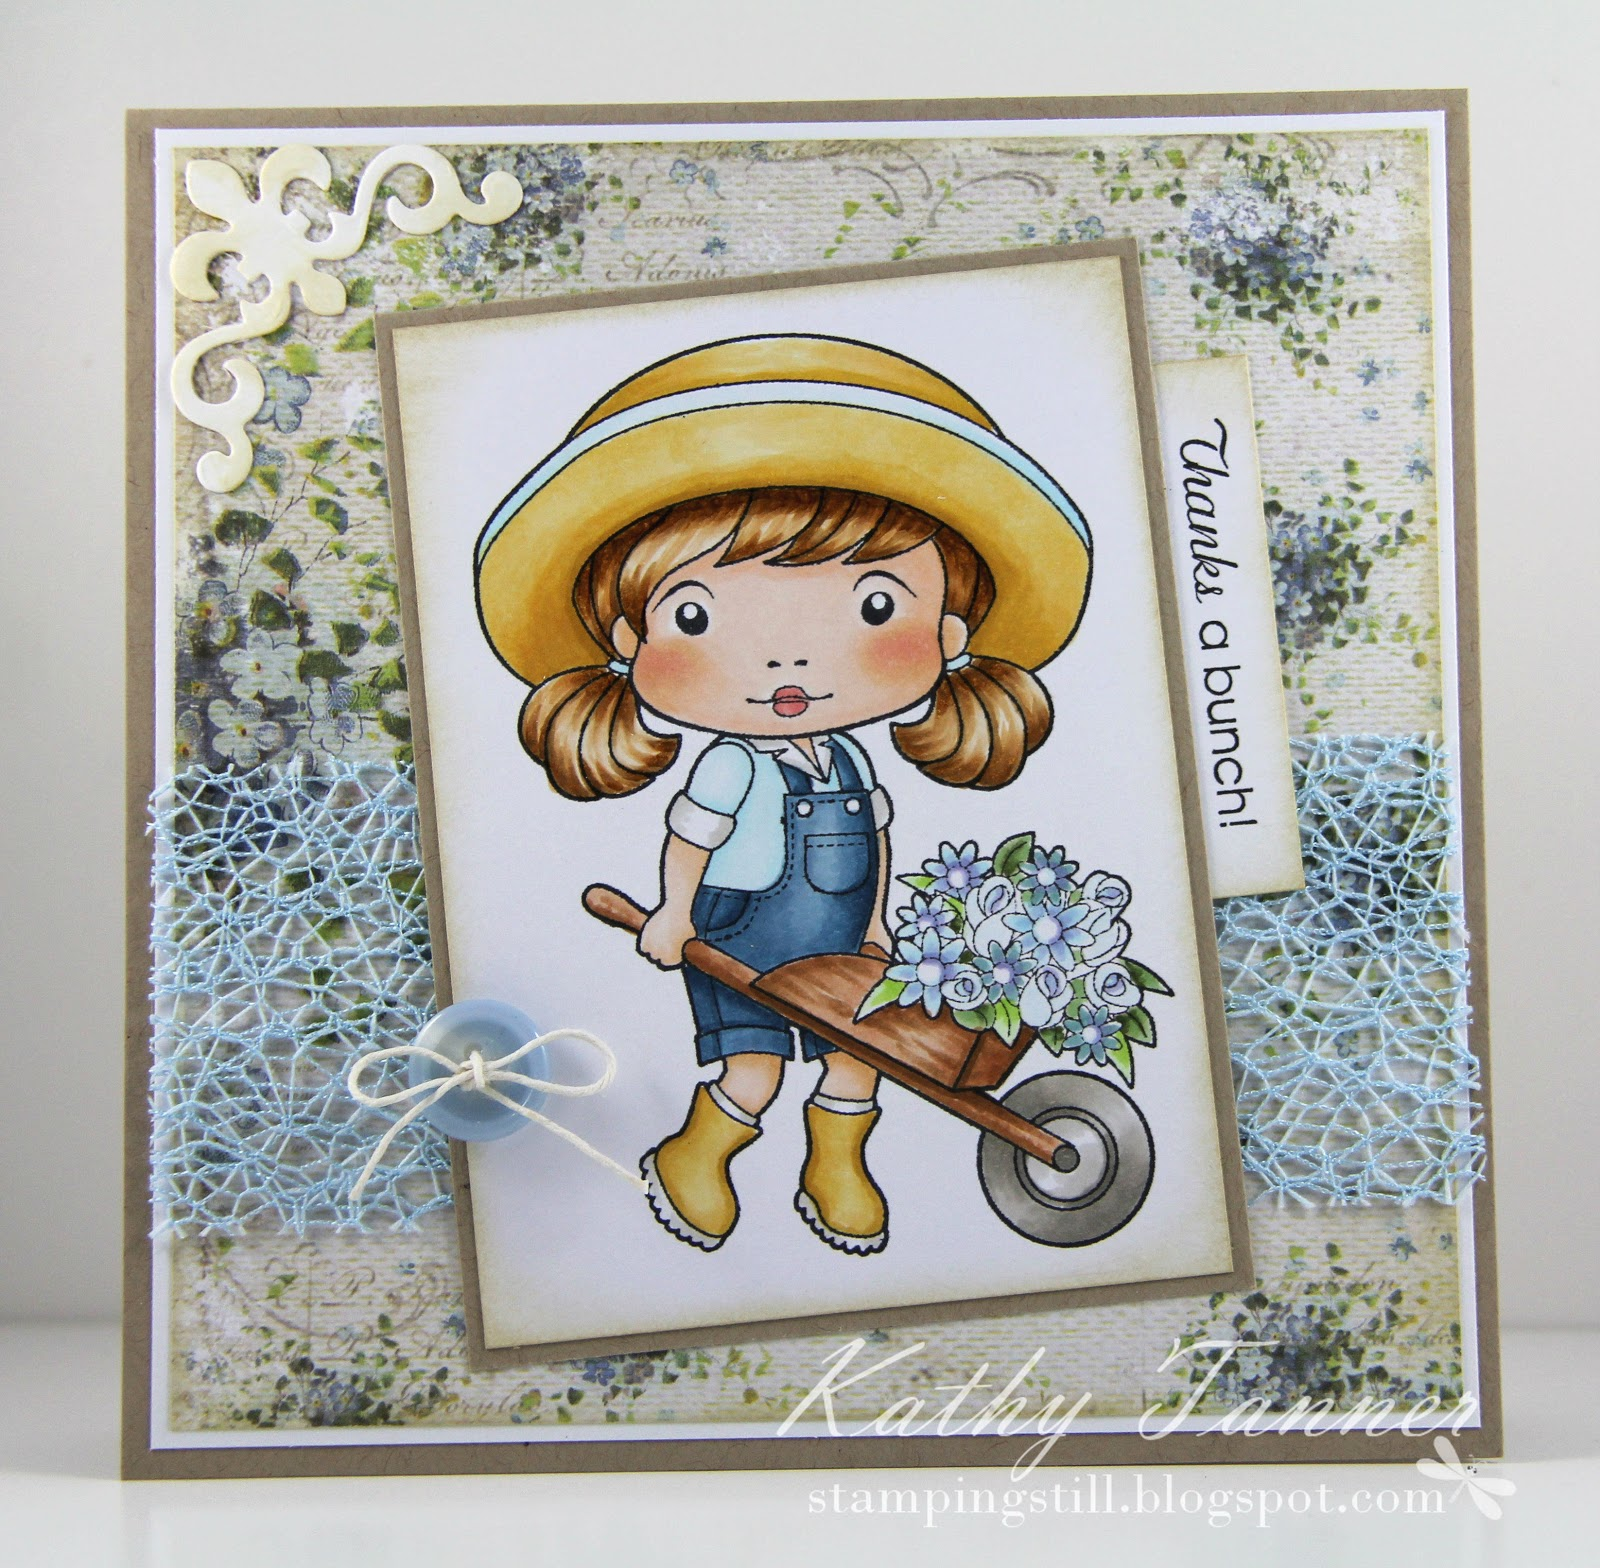 wheelbarrow marci, la la land crafts, fleur de lis accents spellbinders